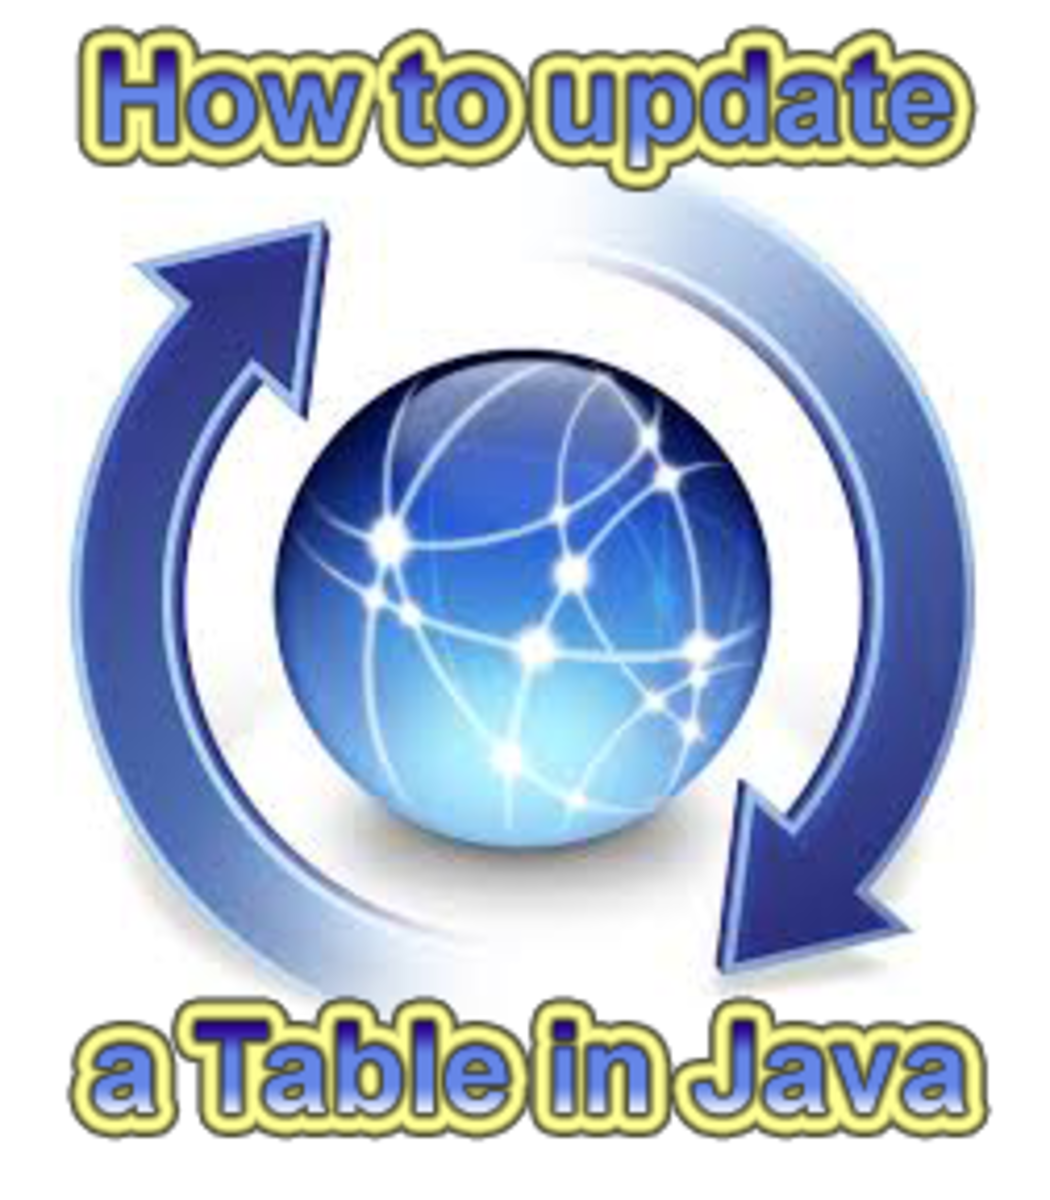 How to update a table in Java NetBeans